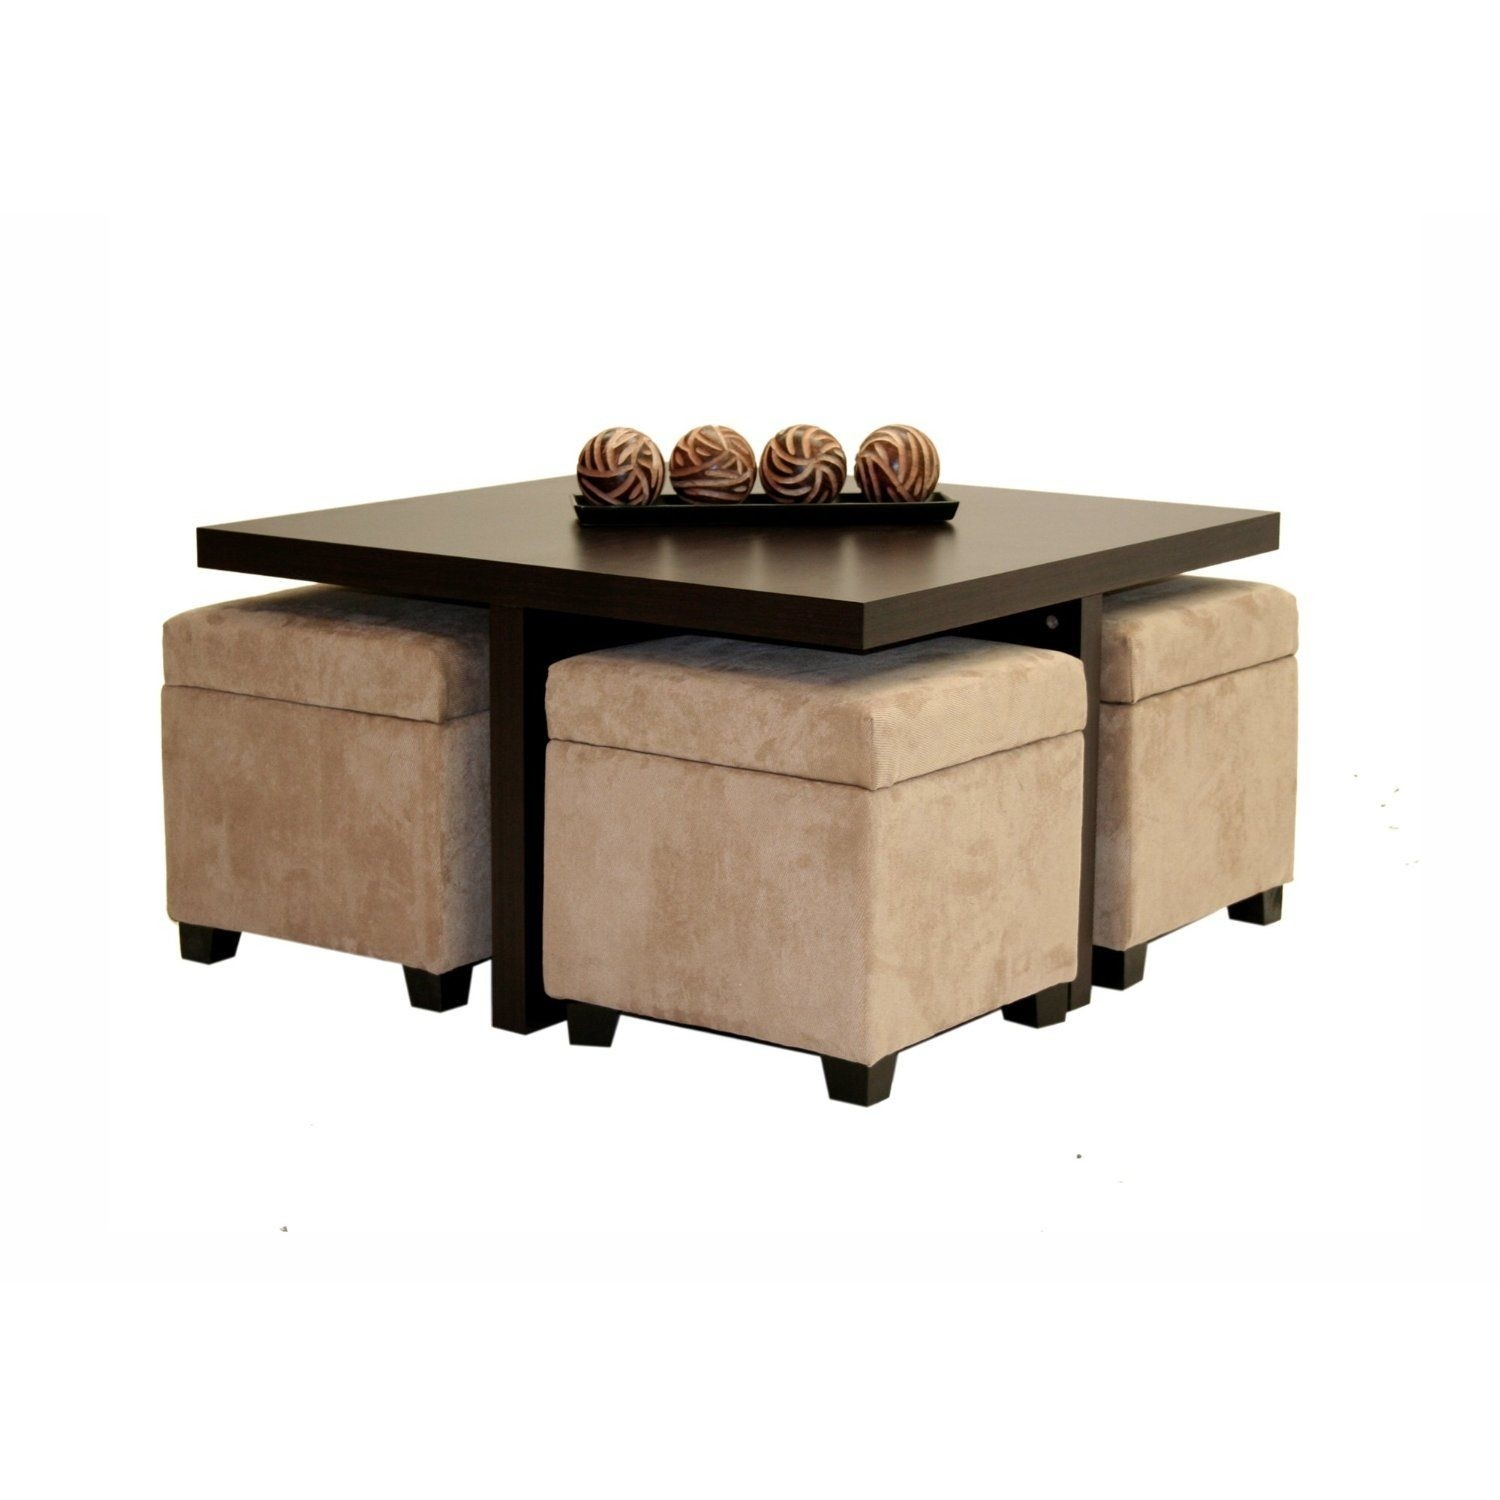 Club coffee table with 4 storage ottomans chocolate and beige  sc 1 st  Foter & Coffee Table With 4 Storage Ottomans - Foter